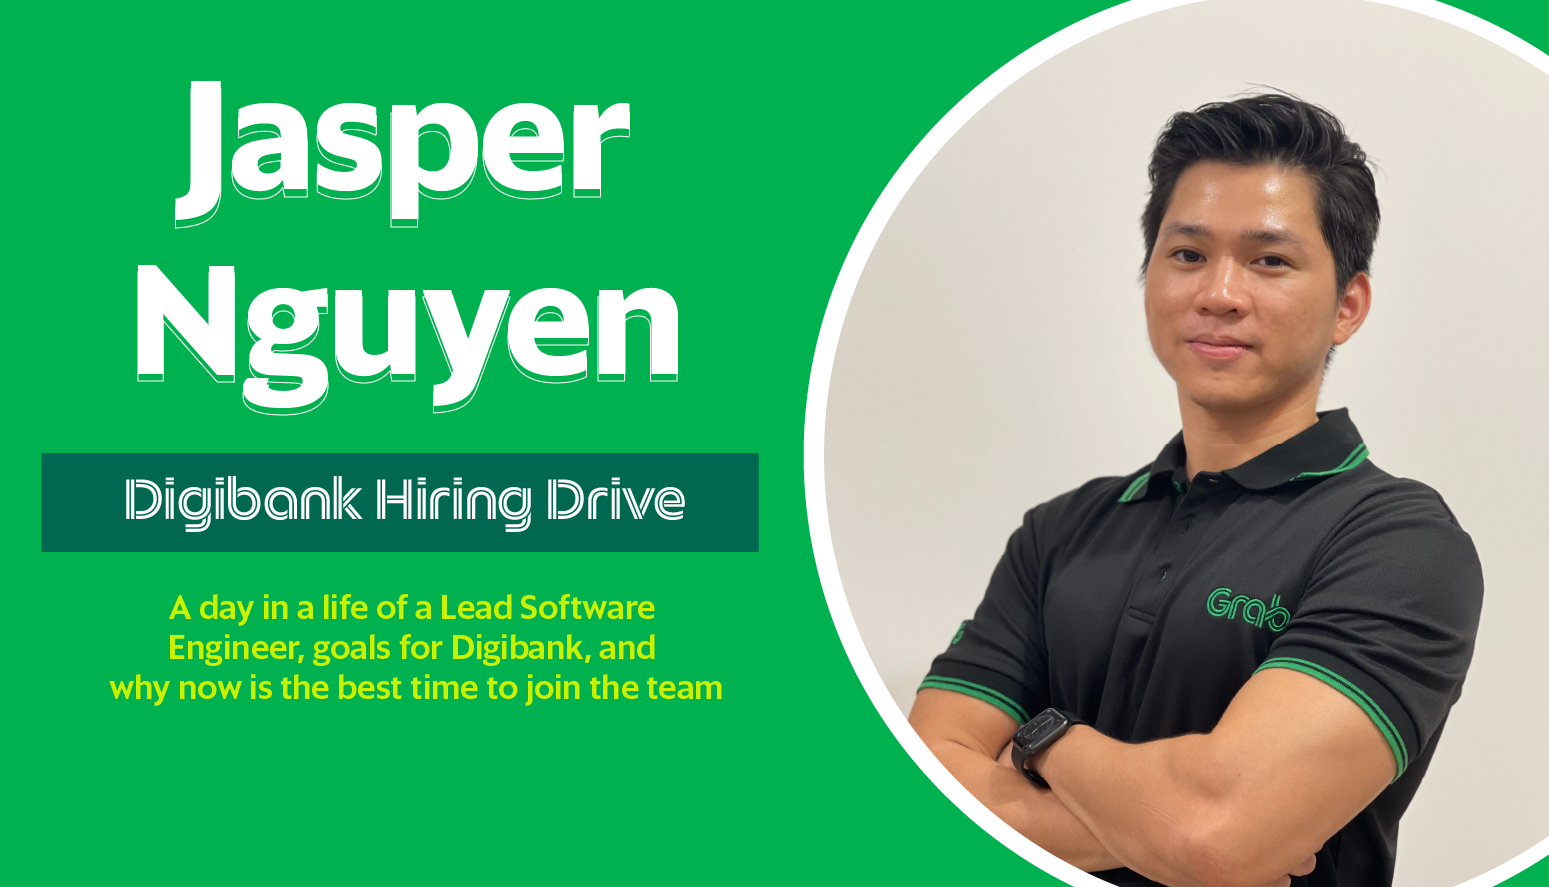 A day in the life of Jasper Nguyen, Lead  Software Engineer for Digibank